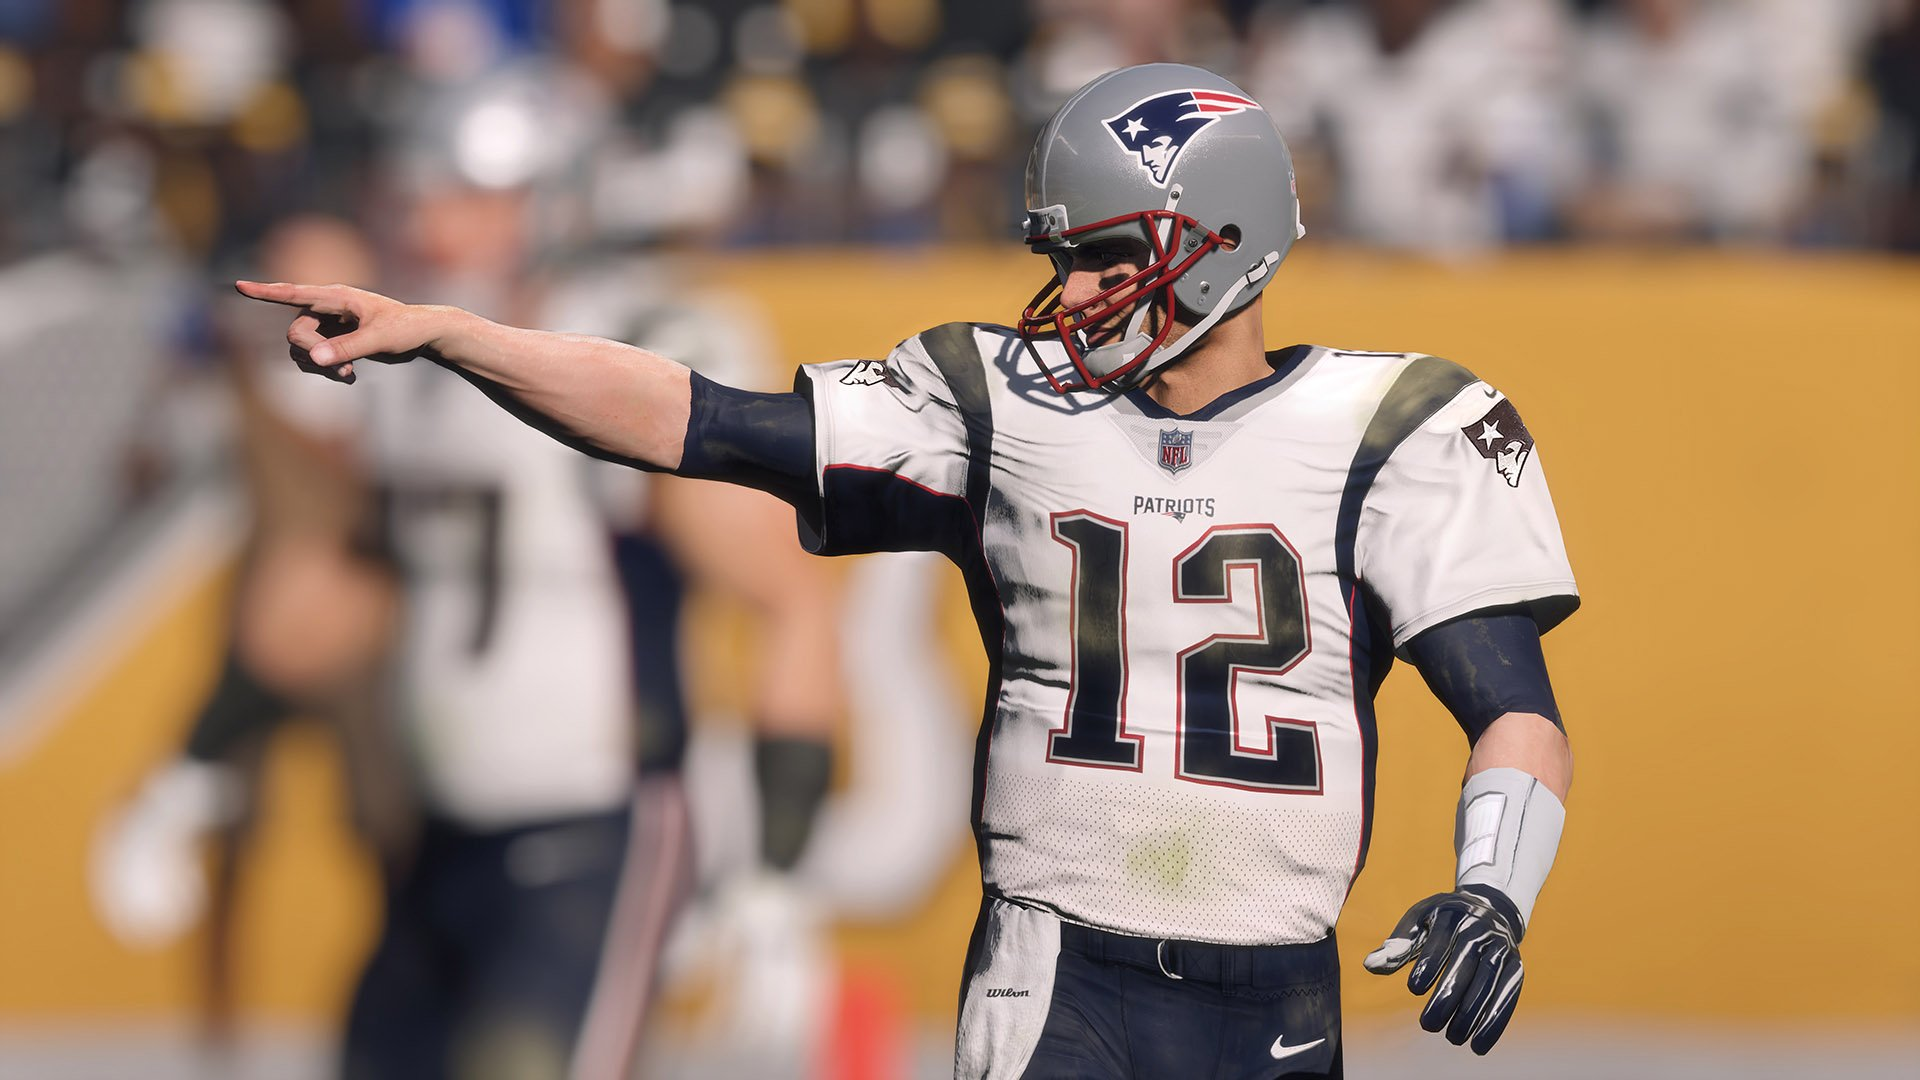 Did Madden 18 give Tom Brady the proper overall rating?